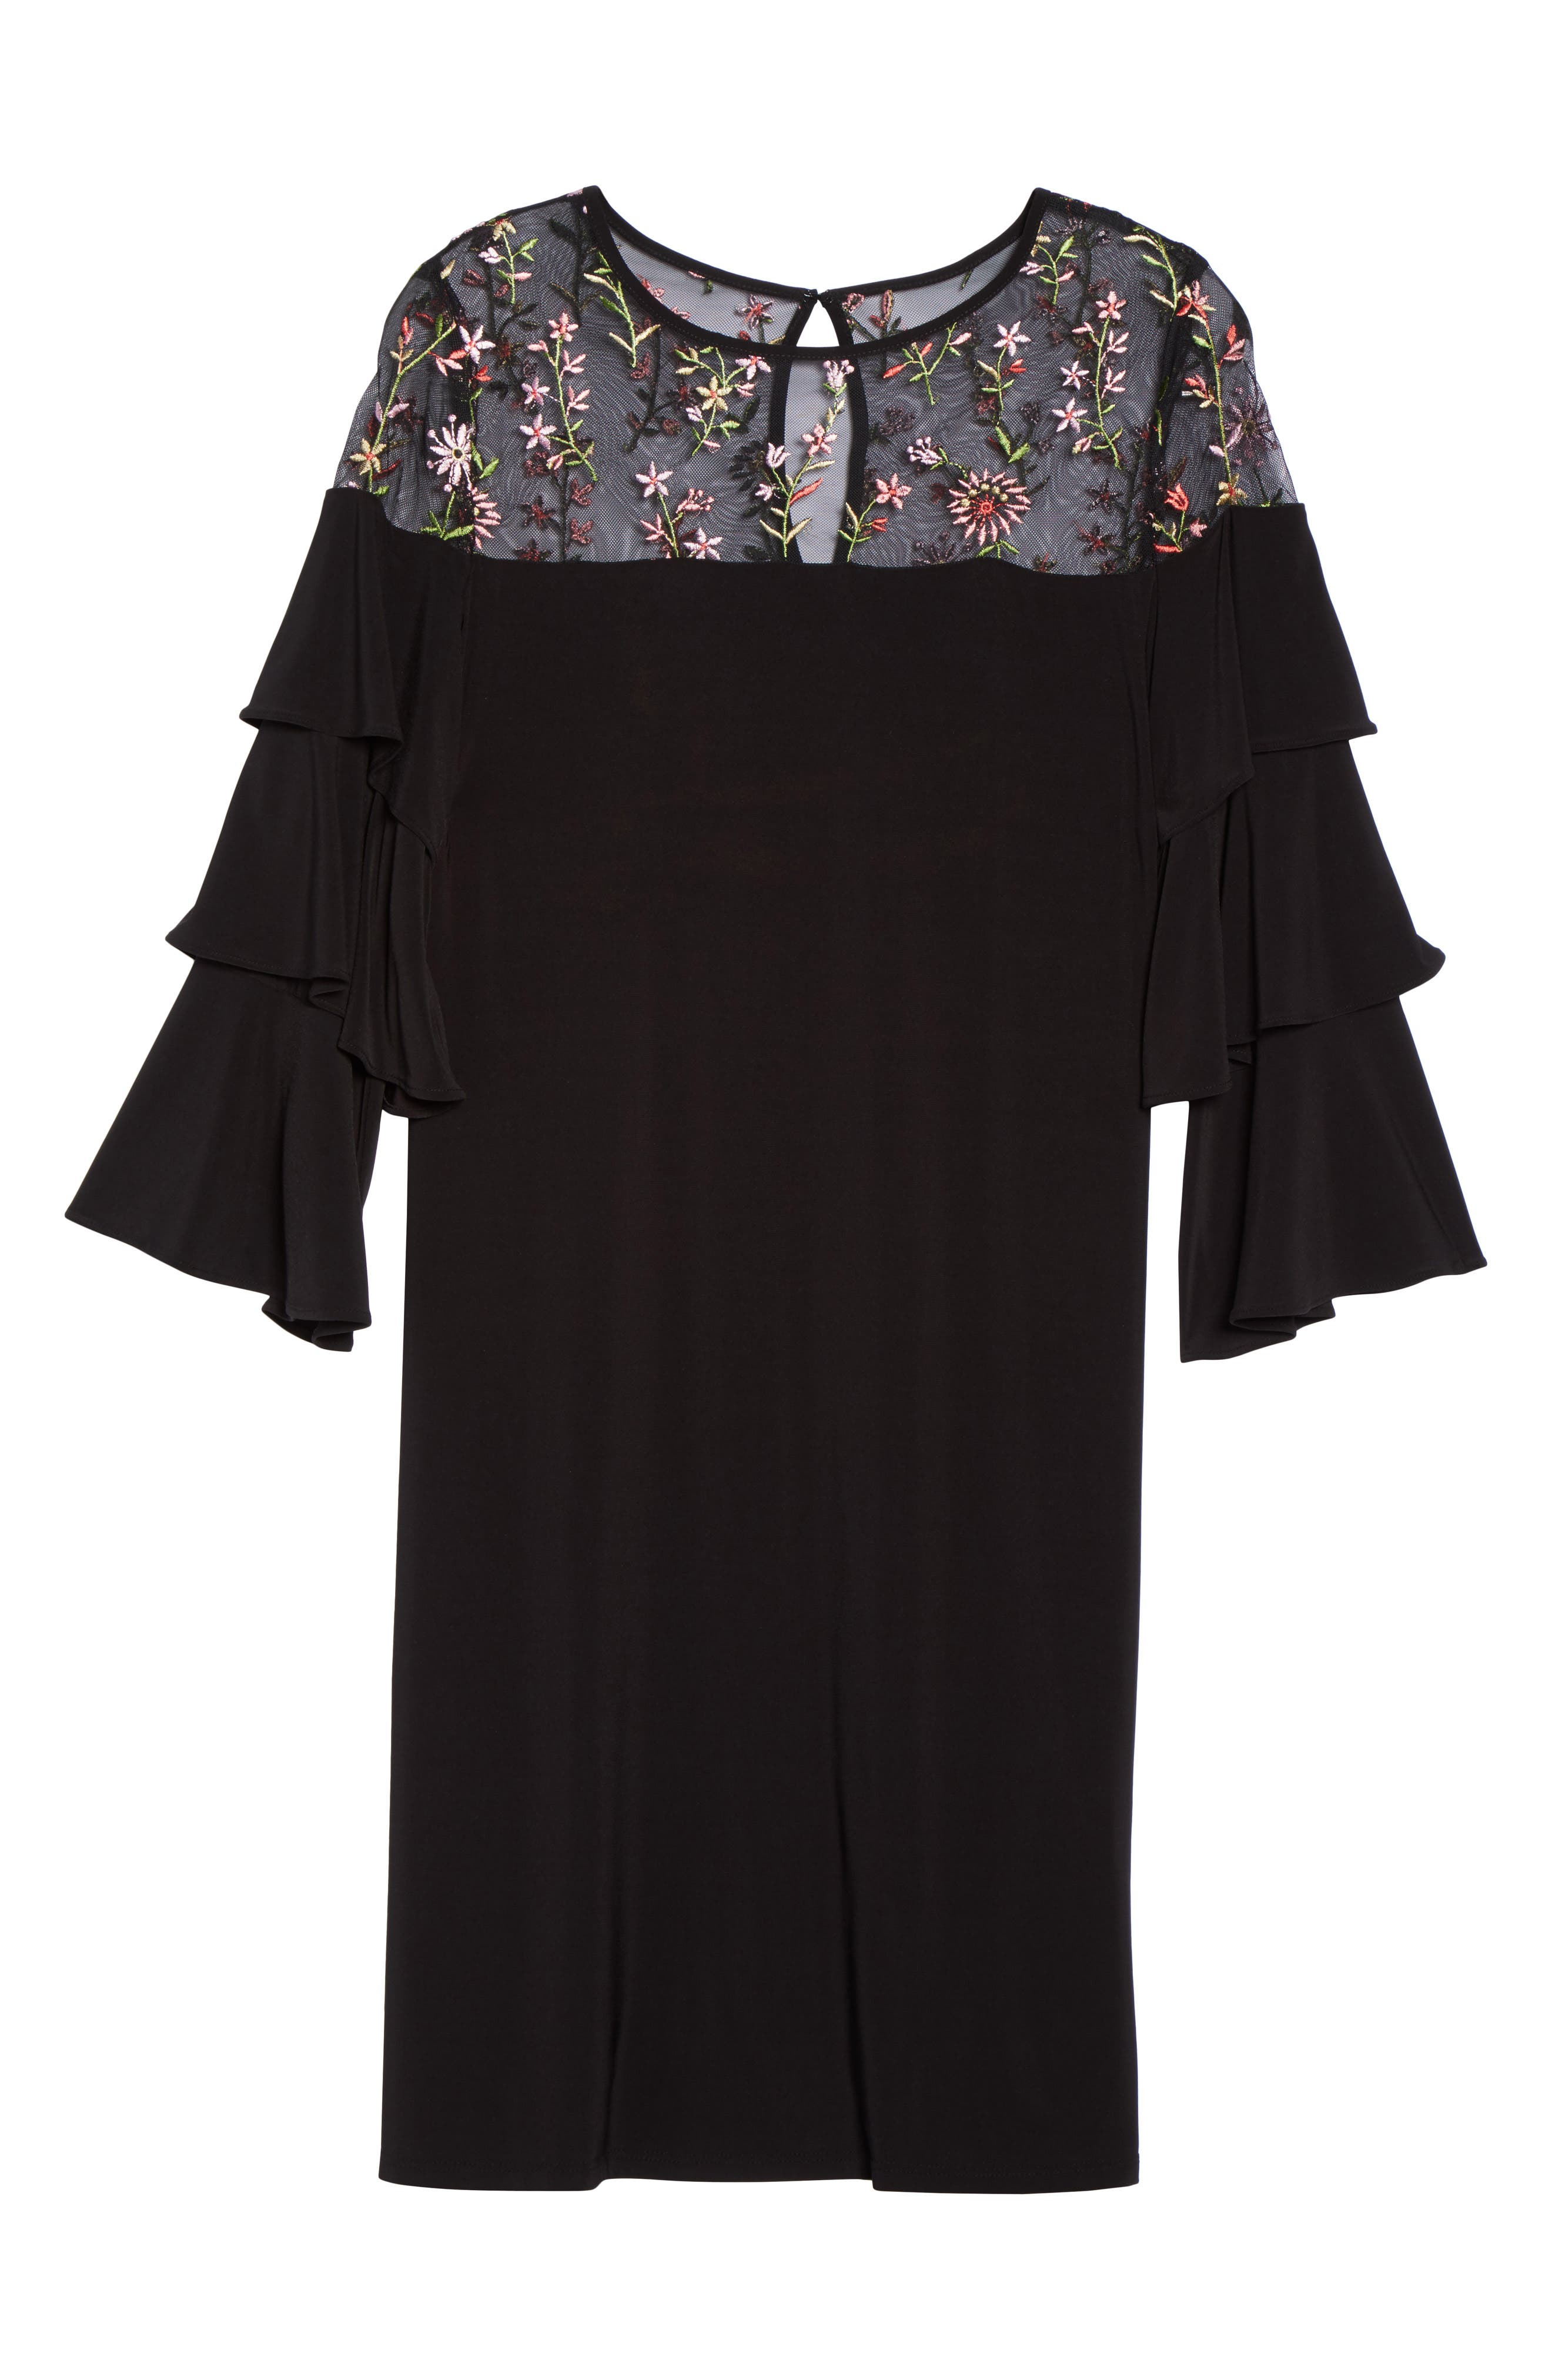 Ruffled Sleeve Embroidered Yoke A-Line Dress,                             Alternate thumbnail 6, color,                             Black/ Coral